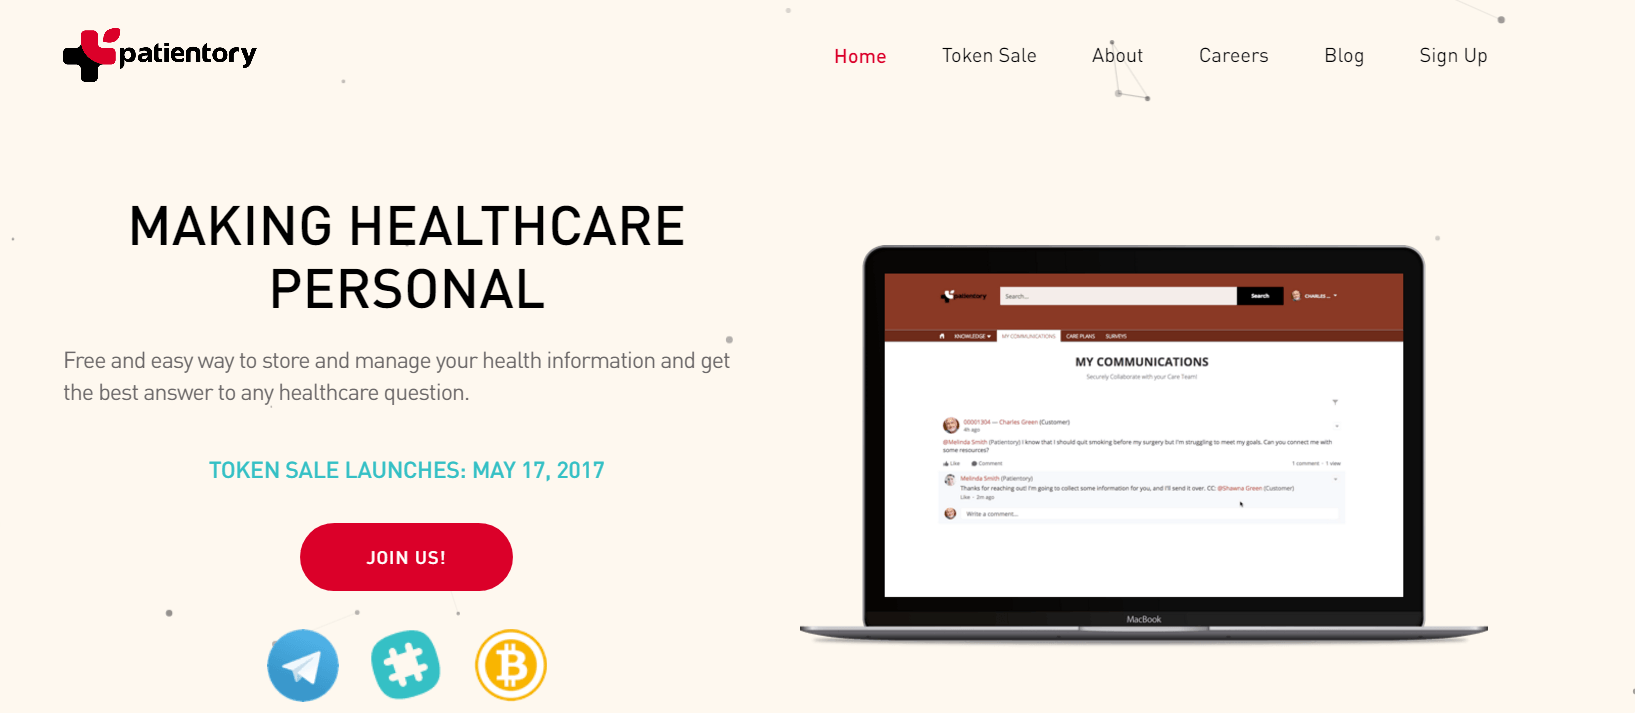 Patientory Launches Healthcare's First Crypto-Token